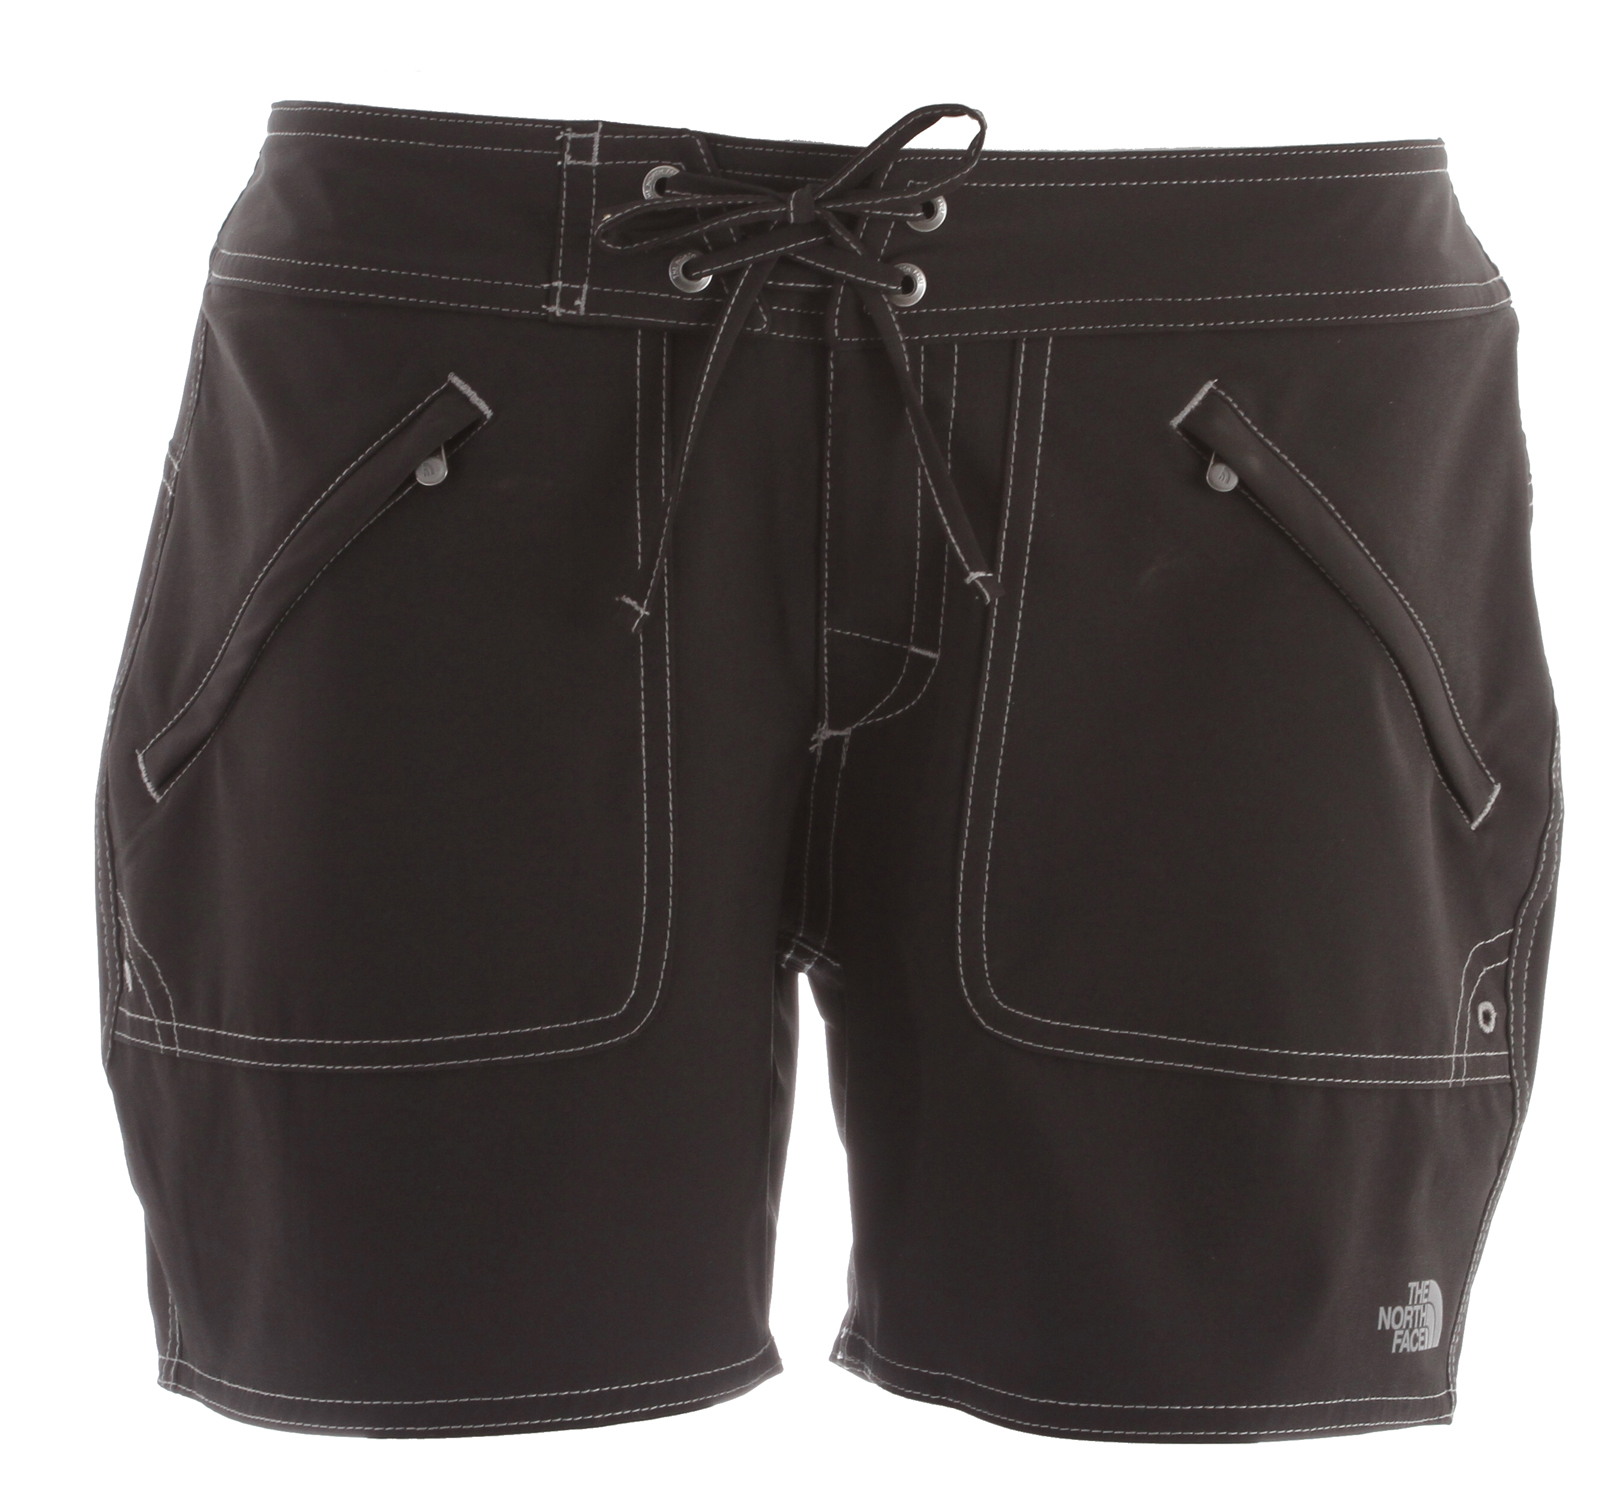 The North Face Apex Washoe Shorts TNF Black - $34.95